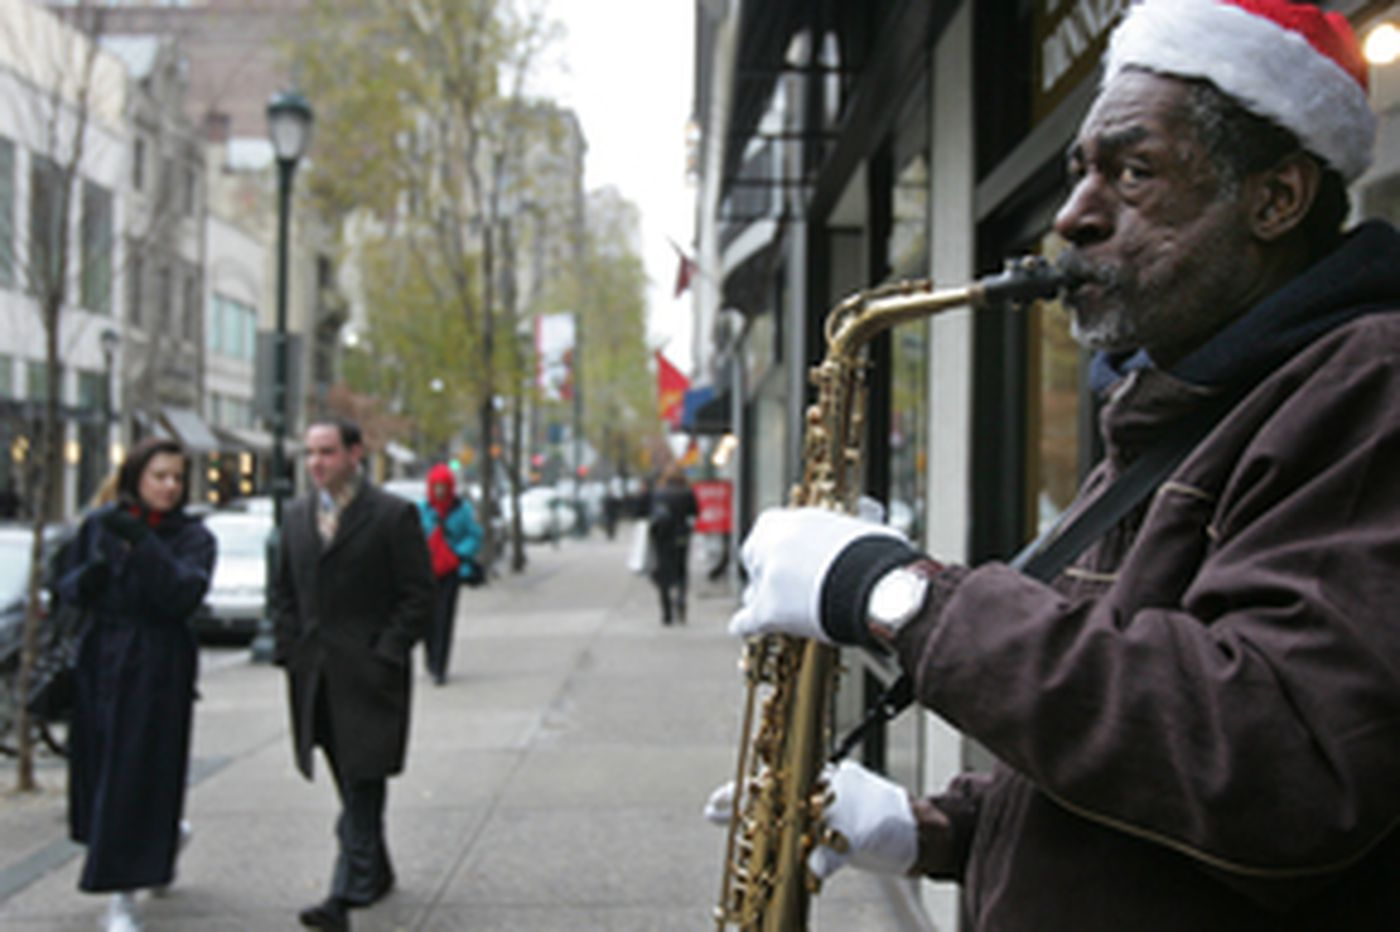 What now for street musicians?